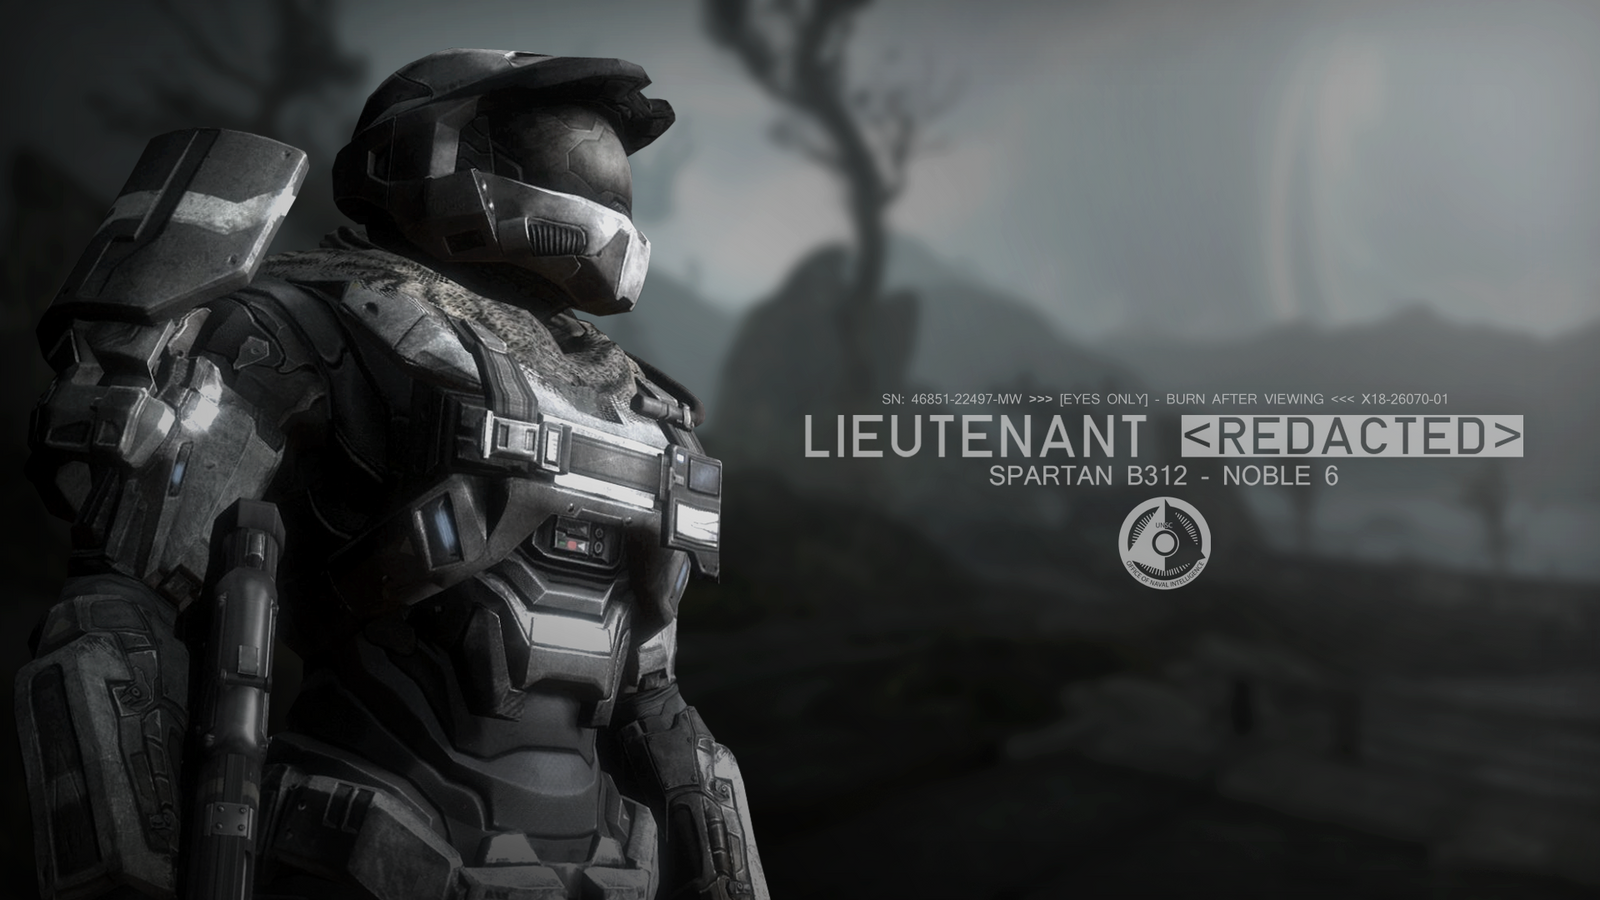 Halo Reach Noble 6